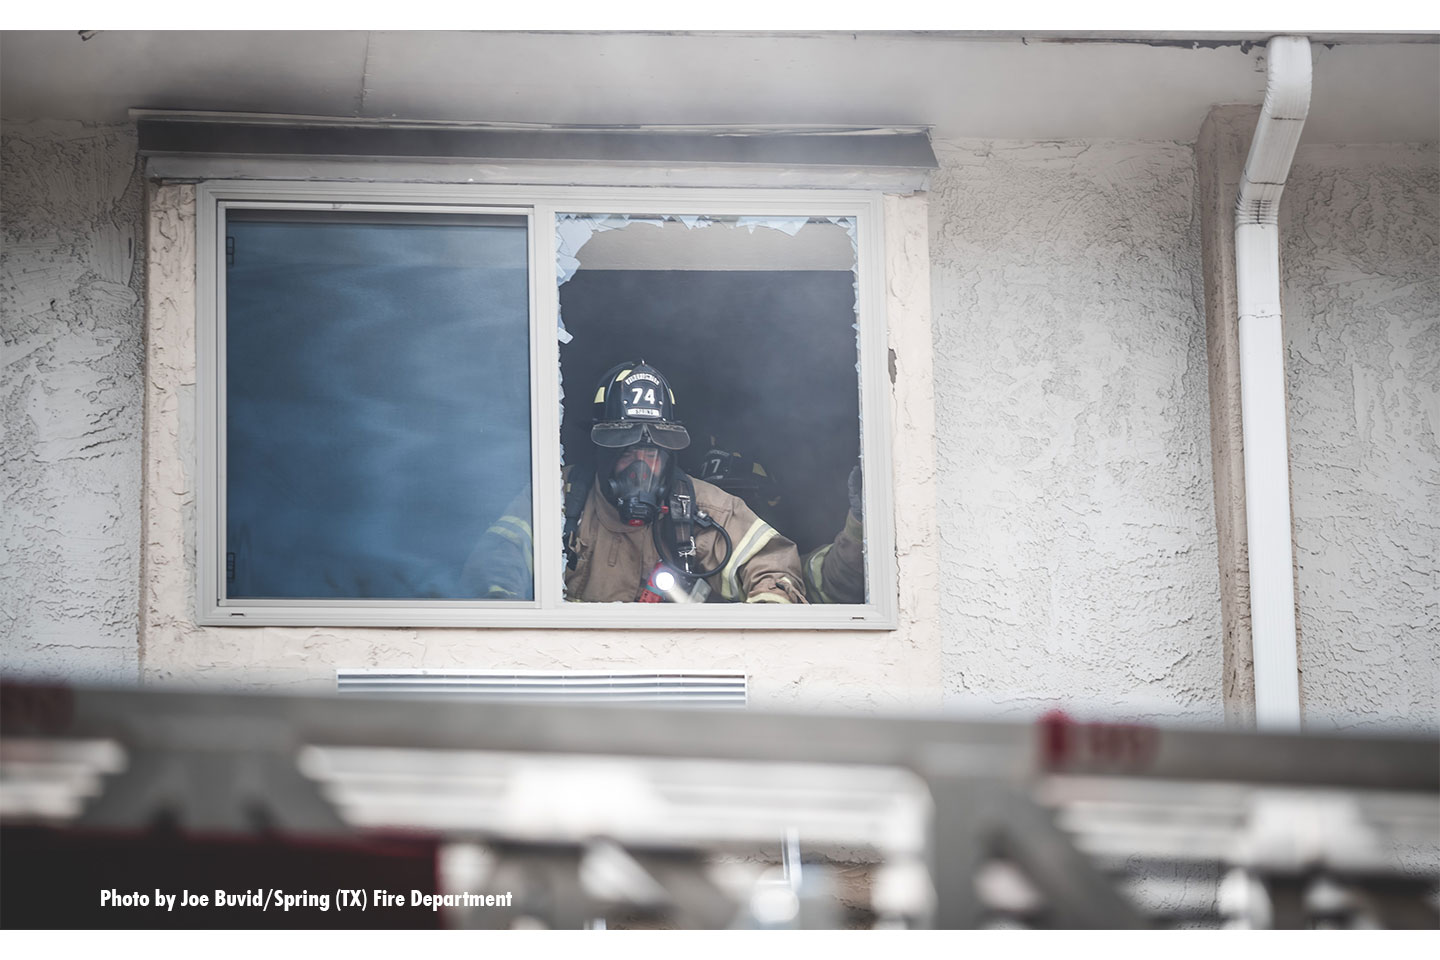 A firefighter inside the motel looks out on the scene.